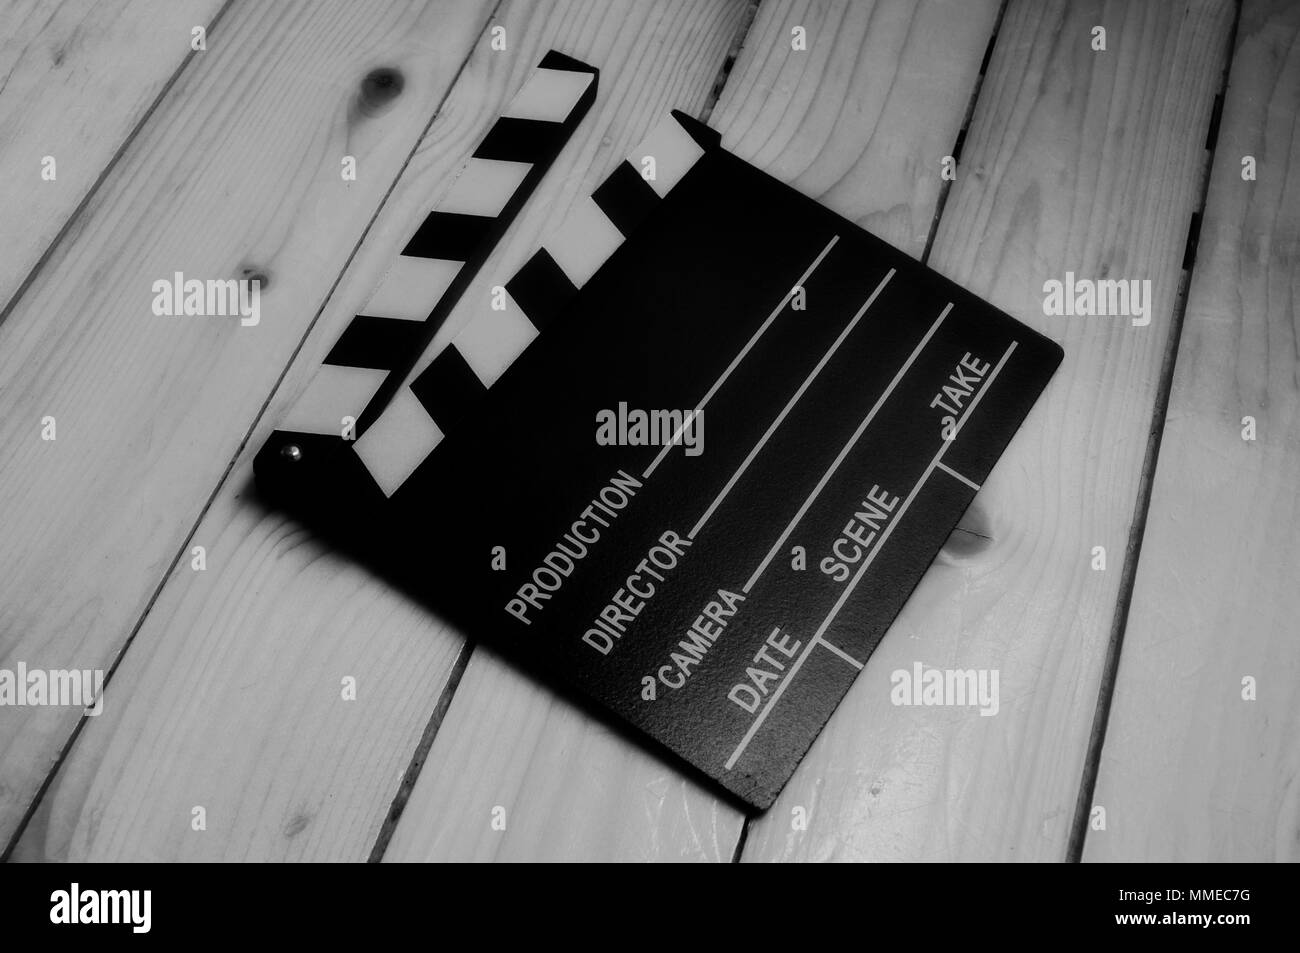 Slate, clapboard for video and film production in black and white - Stock Image